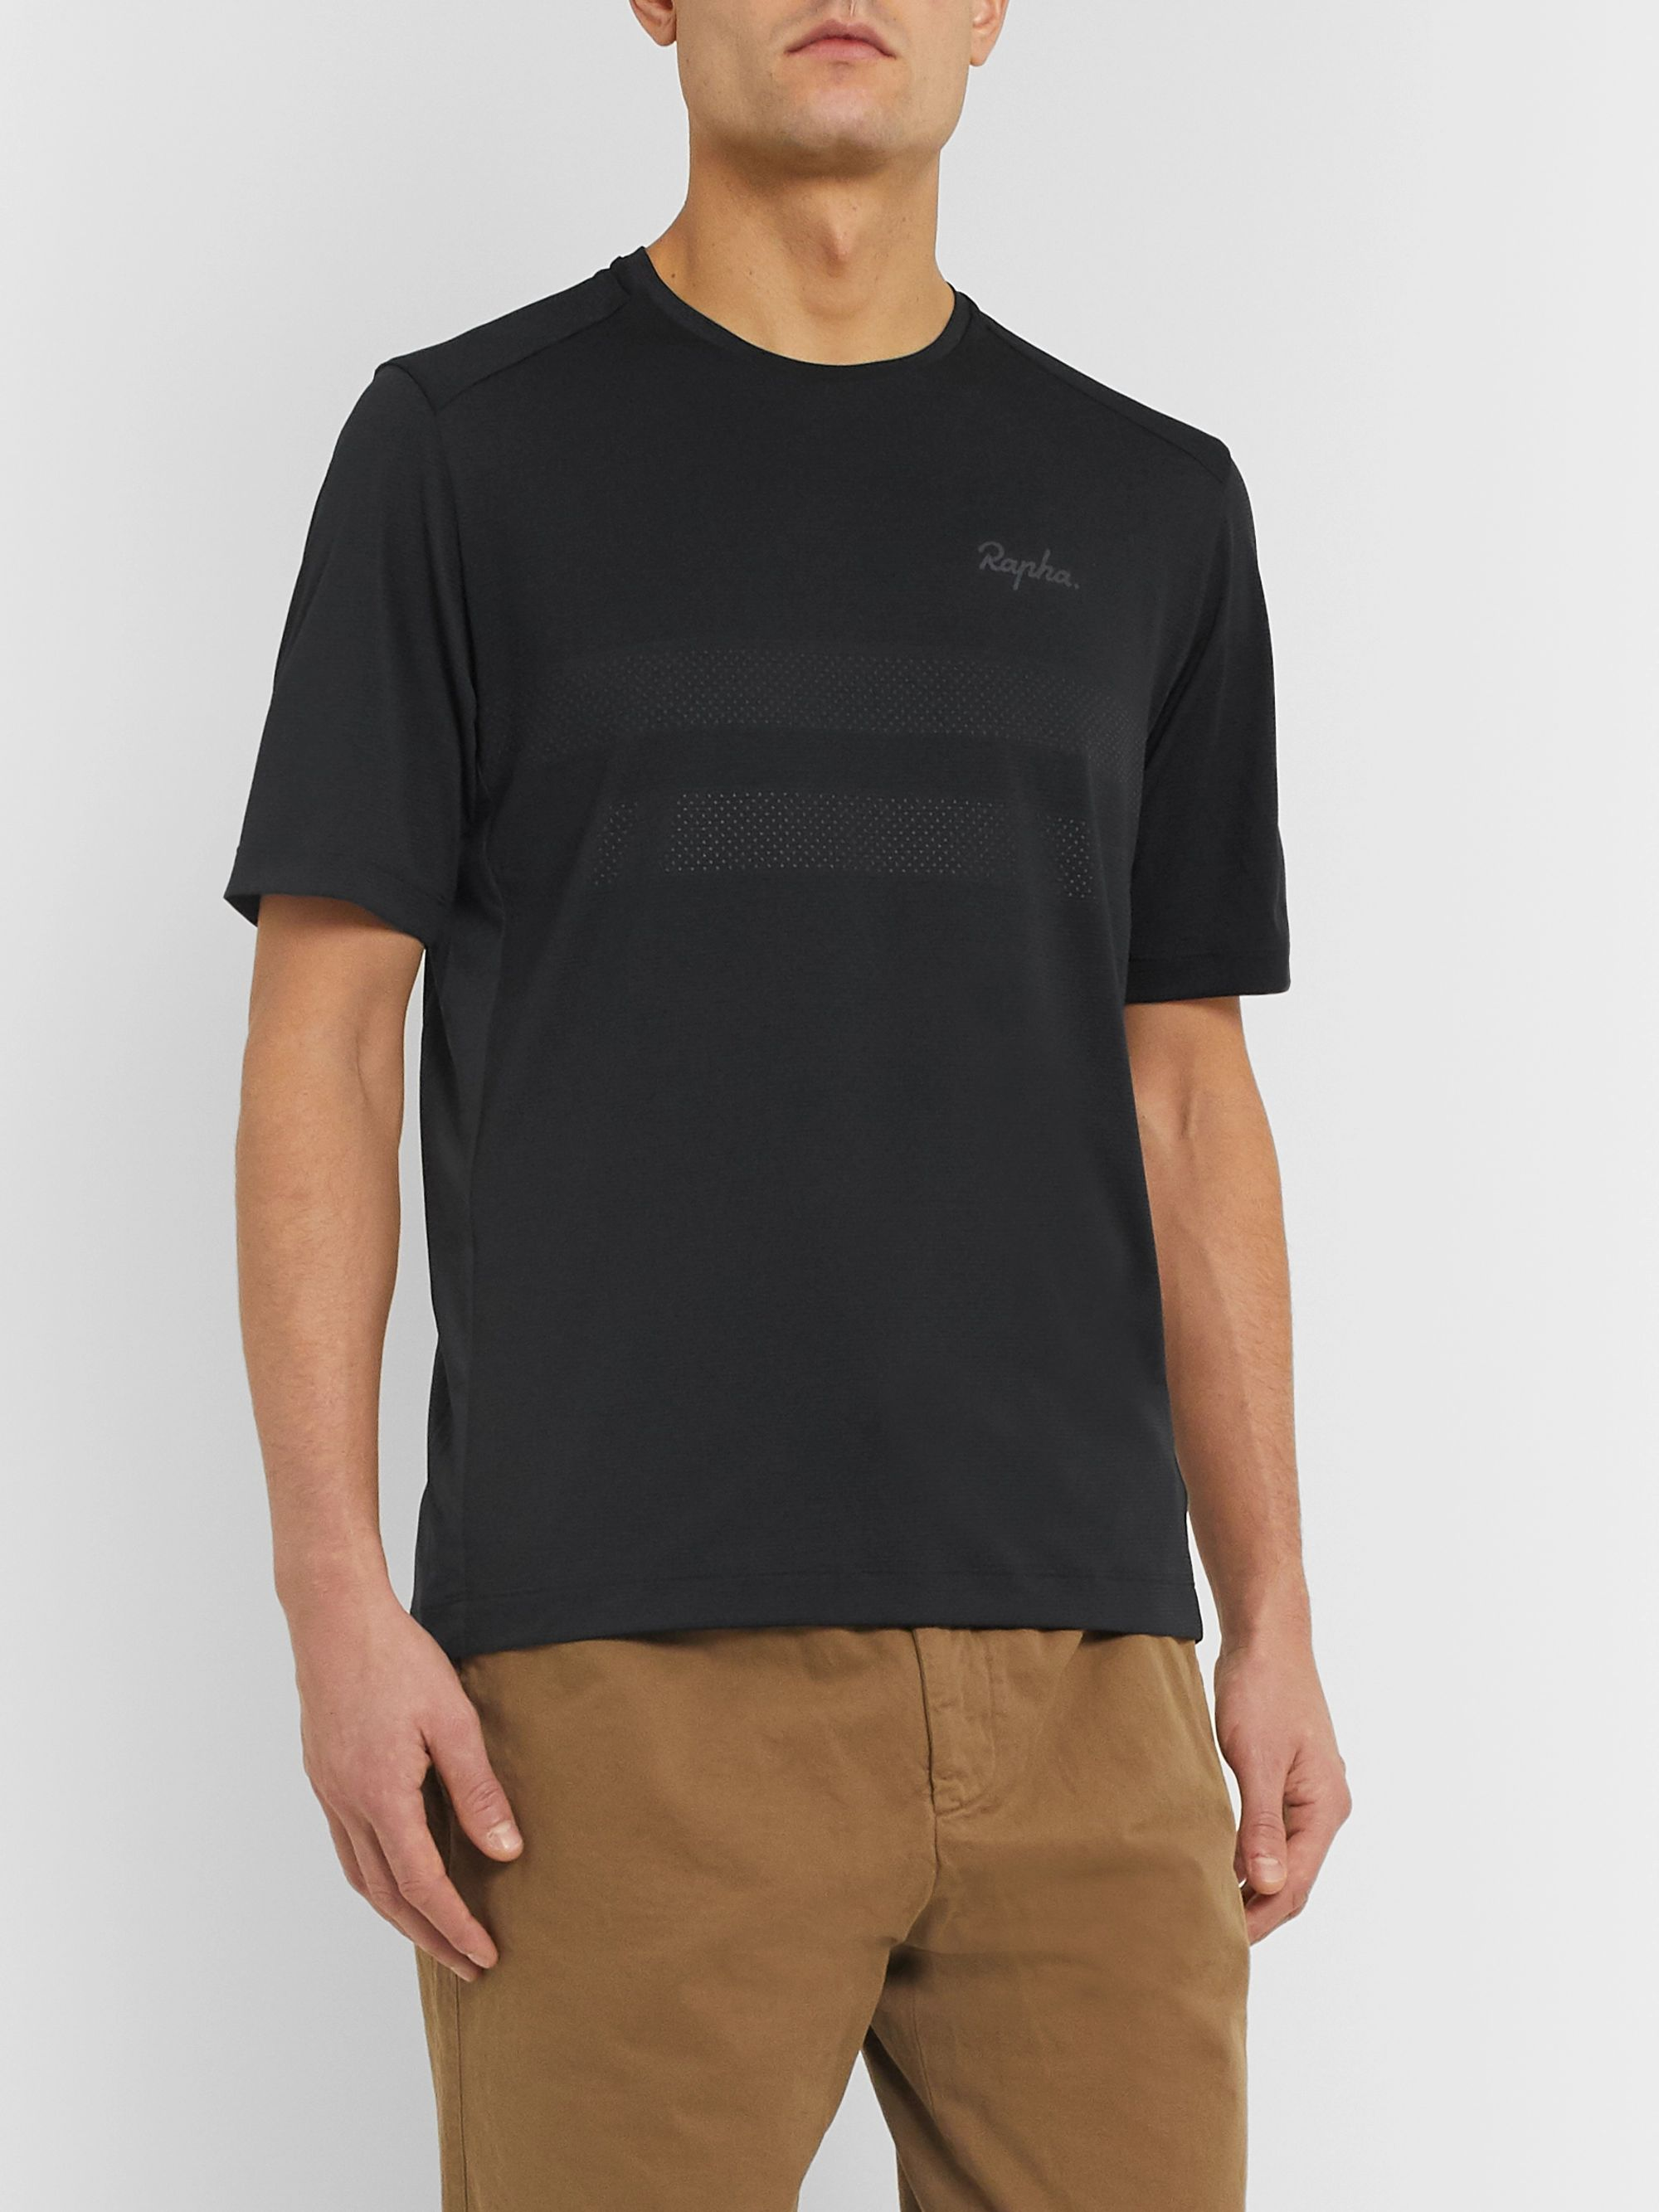 RAPHA Explore Stretch-Knit T-Shirt